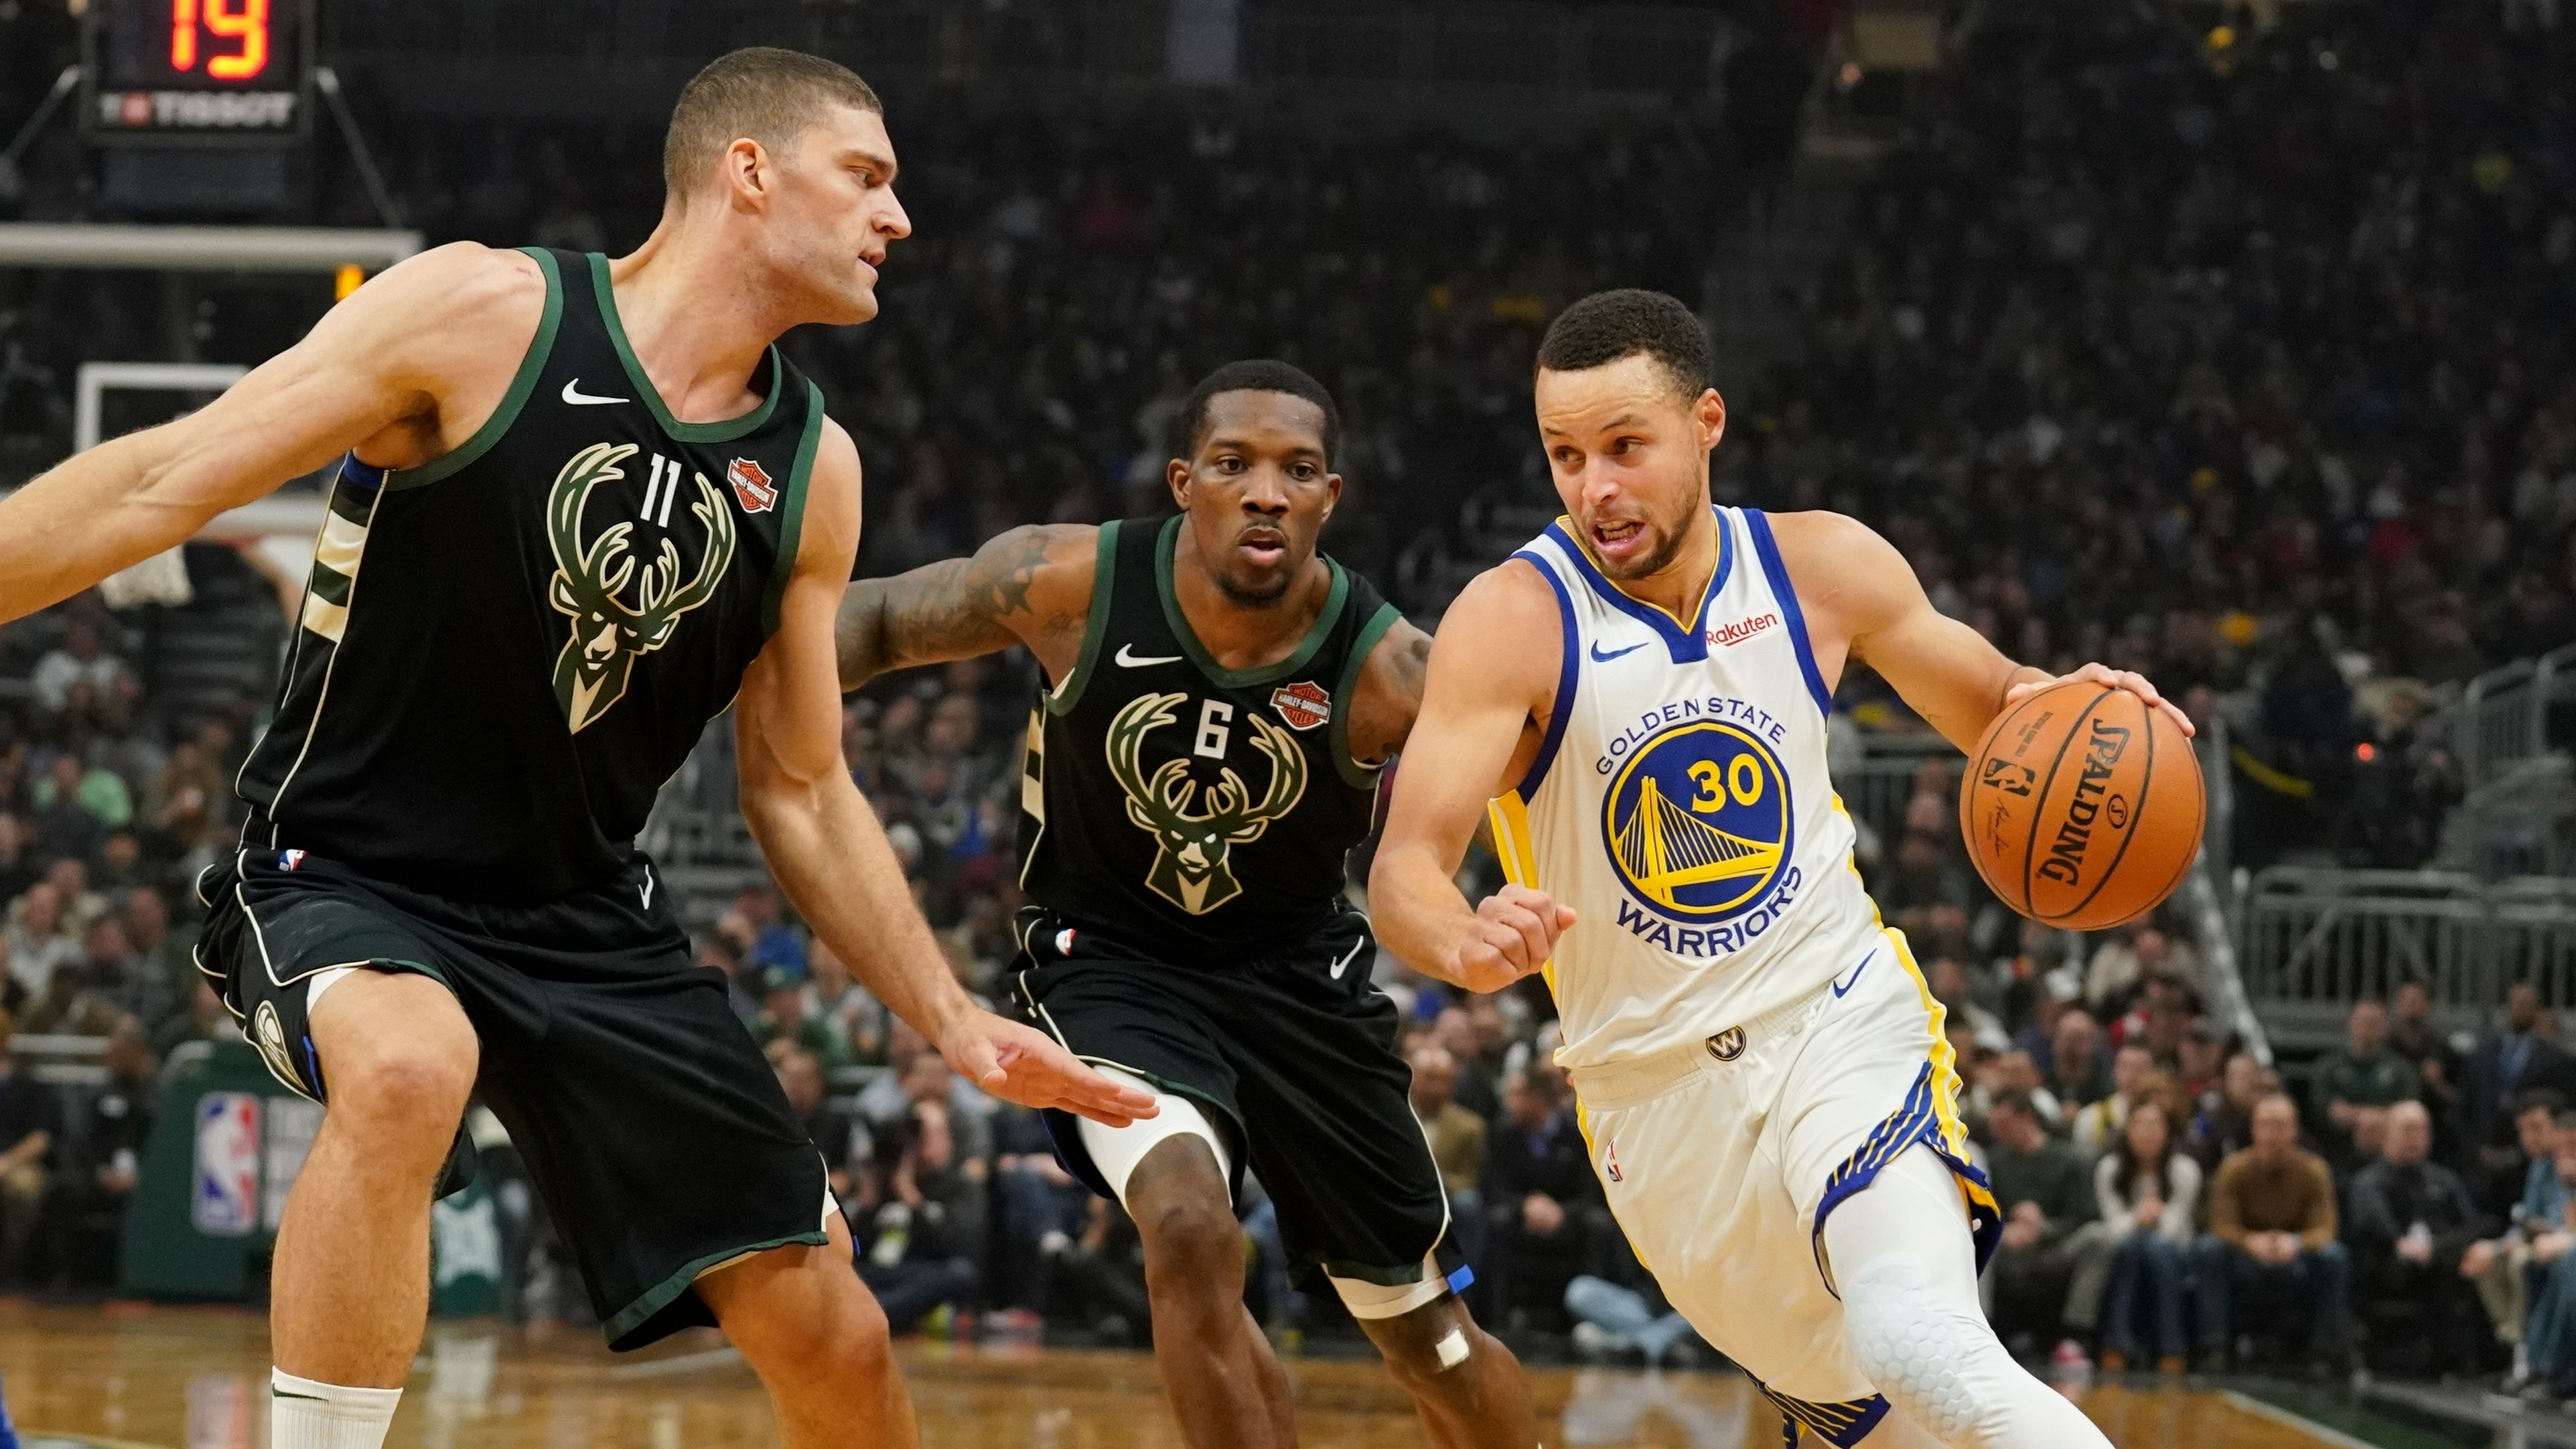 Nba finals odds betting lines the binary options advantage